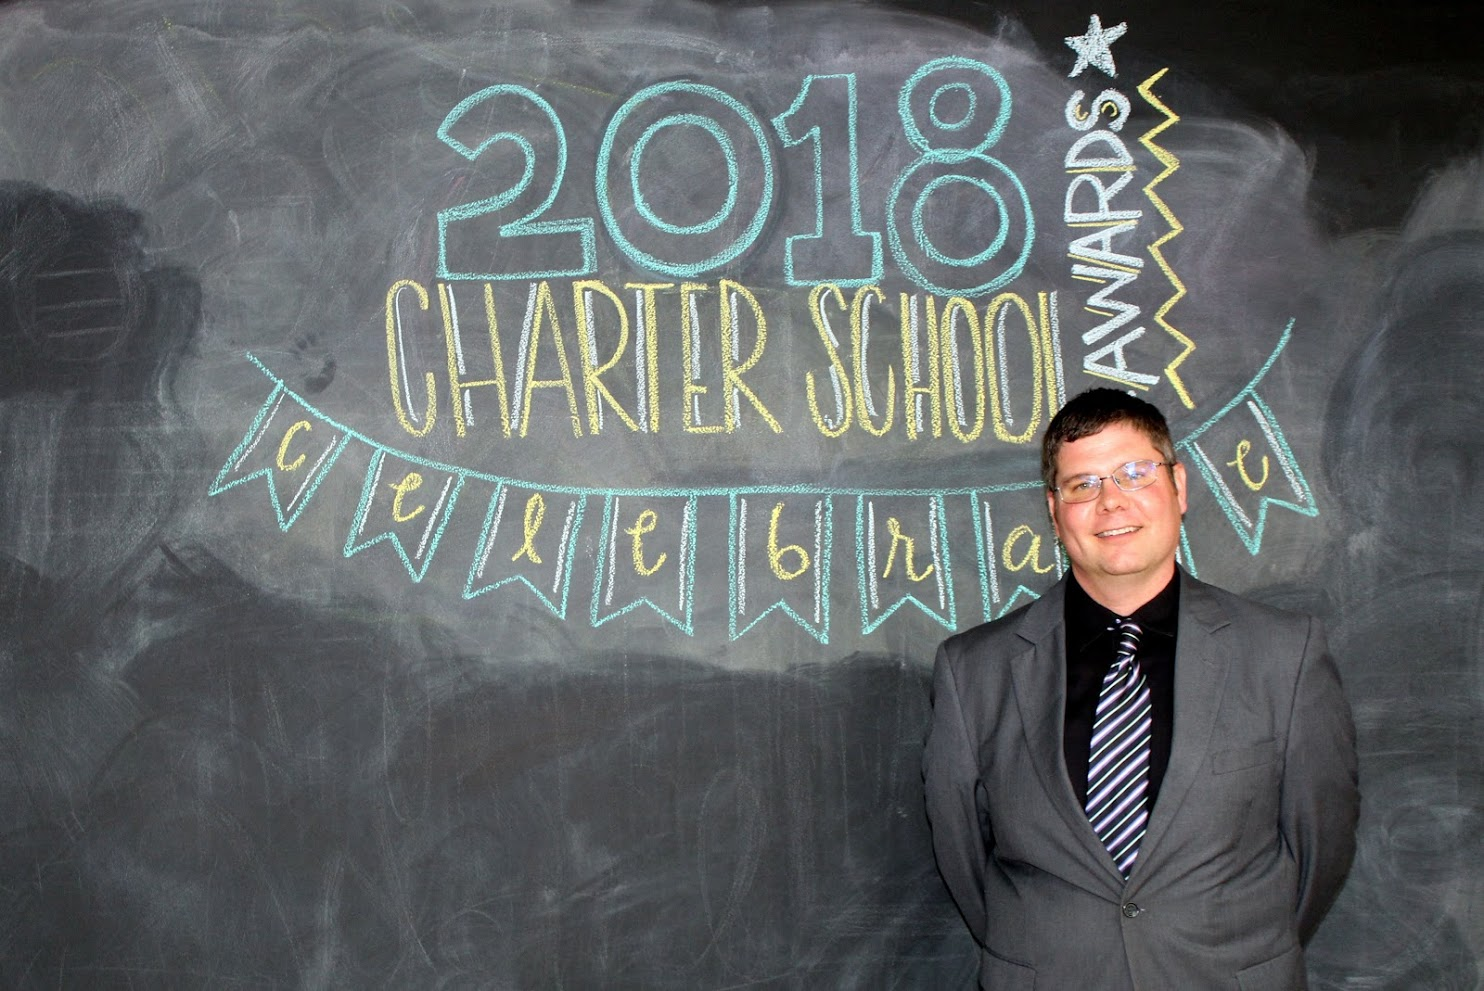 A photo of Shawn Robson, 2018 Charter School Admin of the Year finalist.